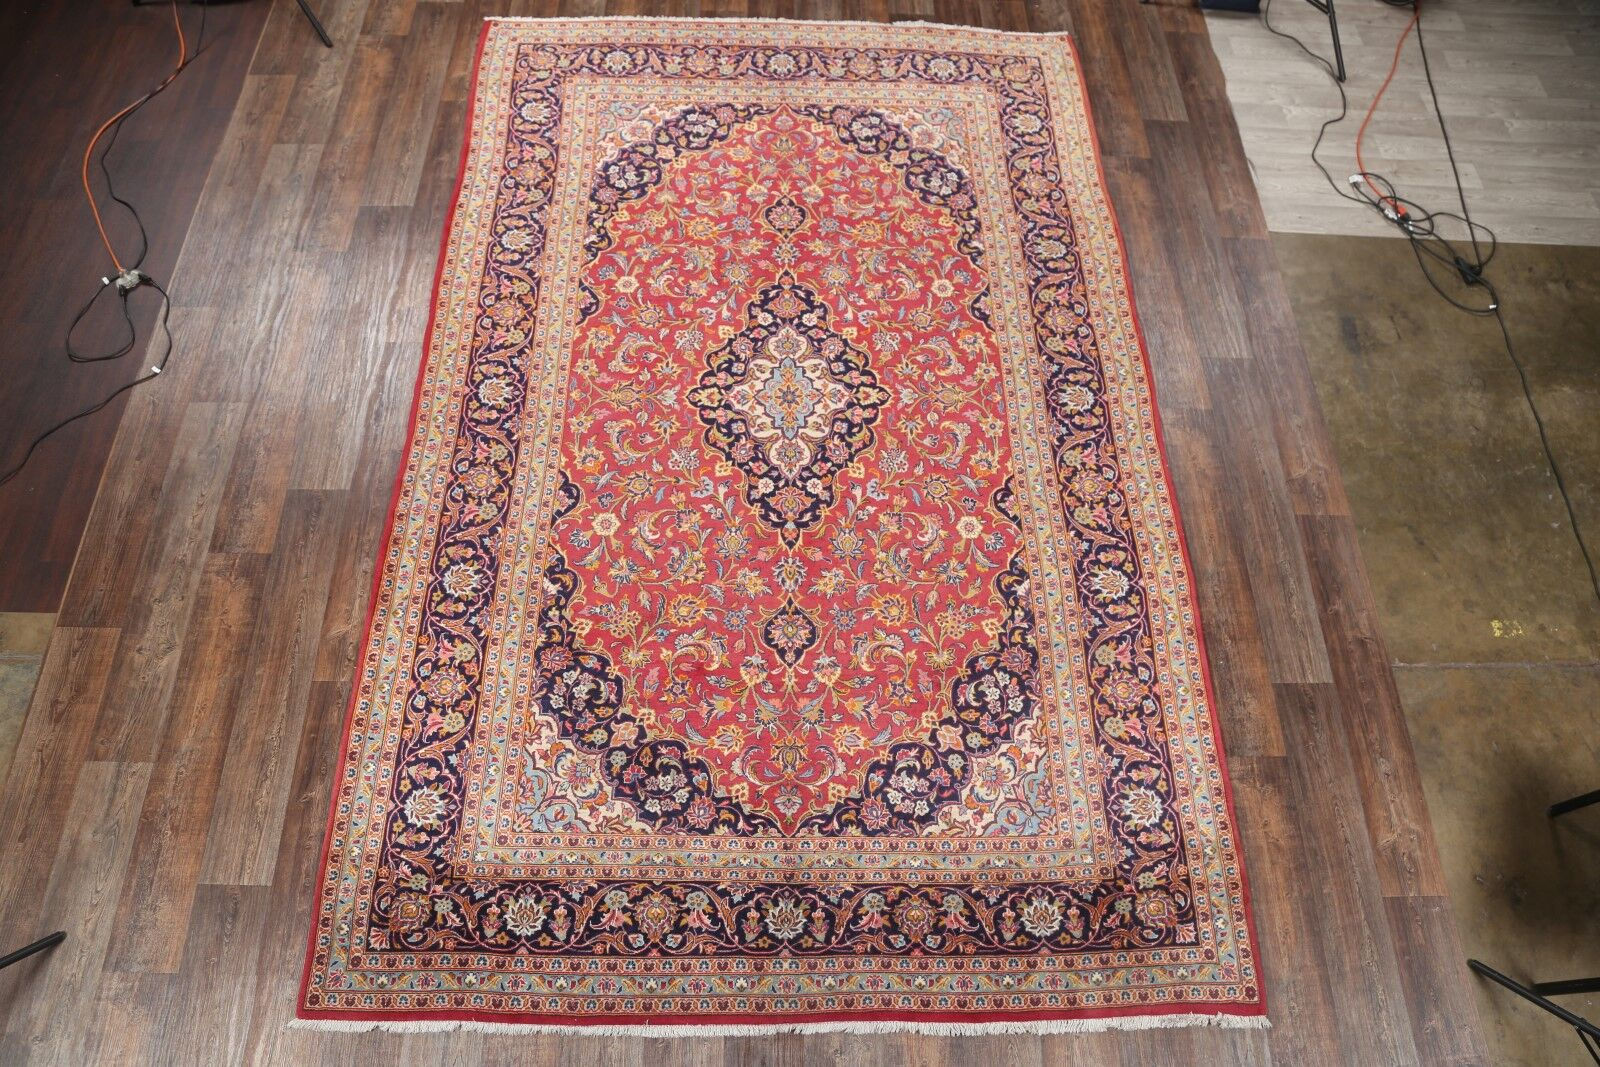 One-of-a-Kind Classical Kashan Persian Traditional Hand-Knotted 8'1